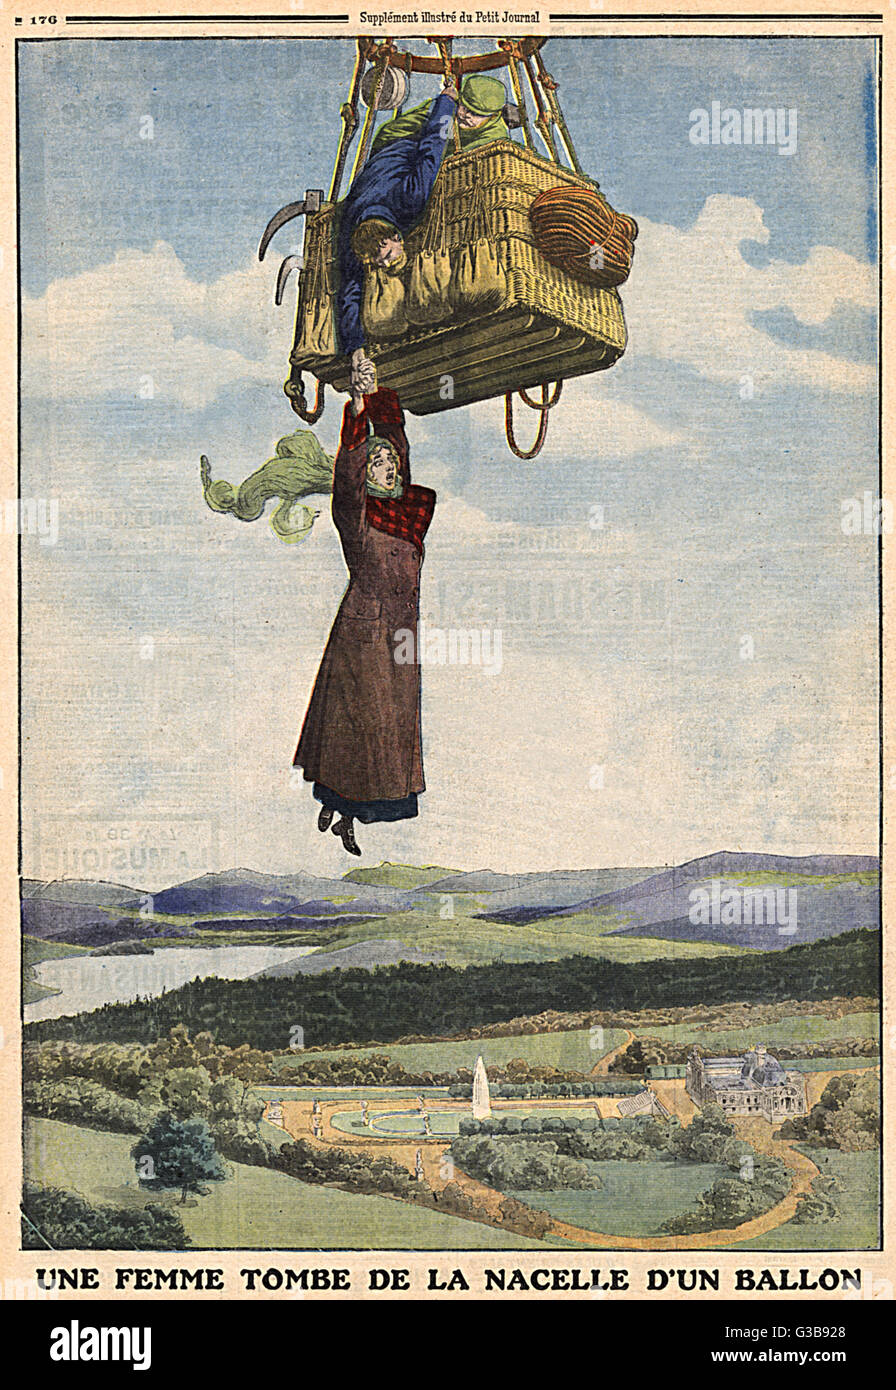 When a Swiss balloon tips  suddenly, a female passenger  falls out : her companion  grabs and holds her as long - Stock Image